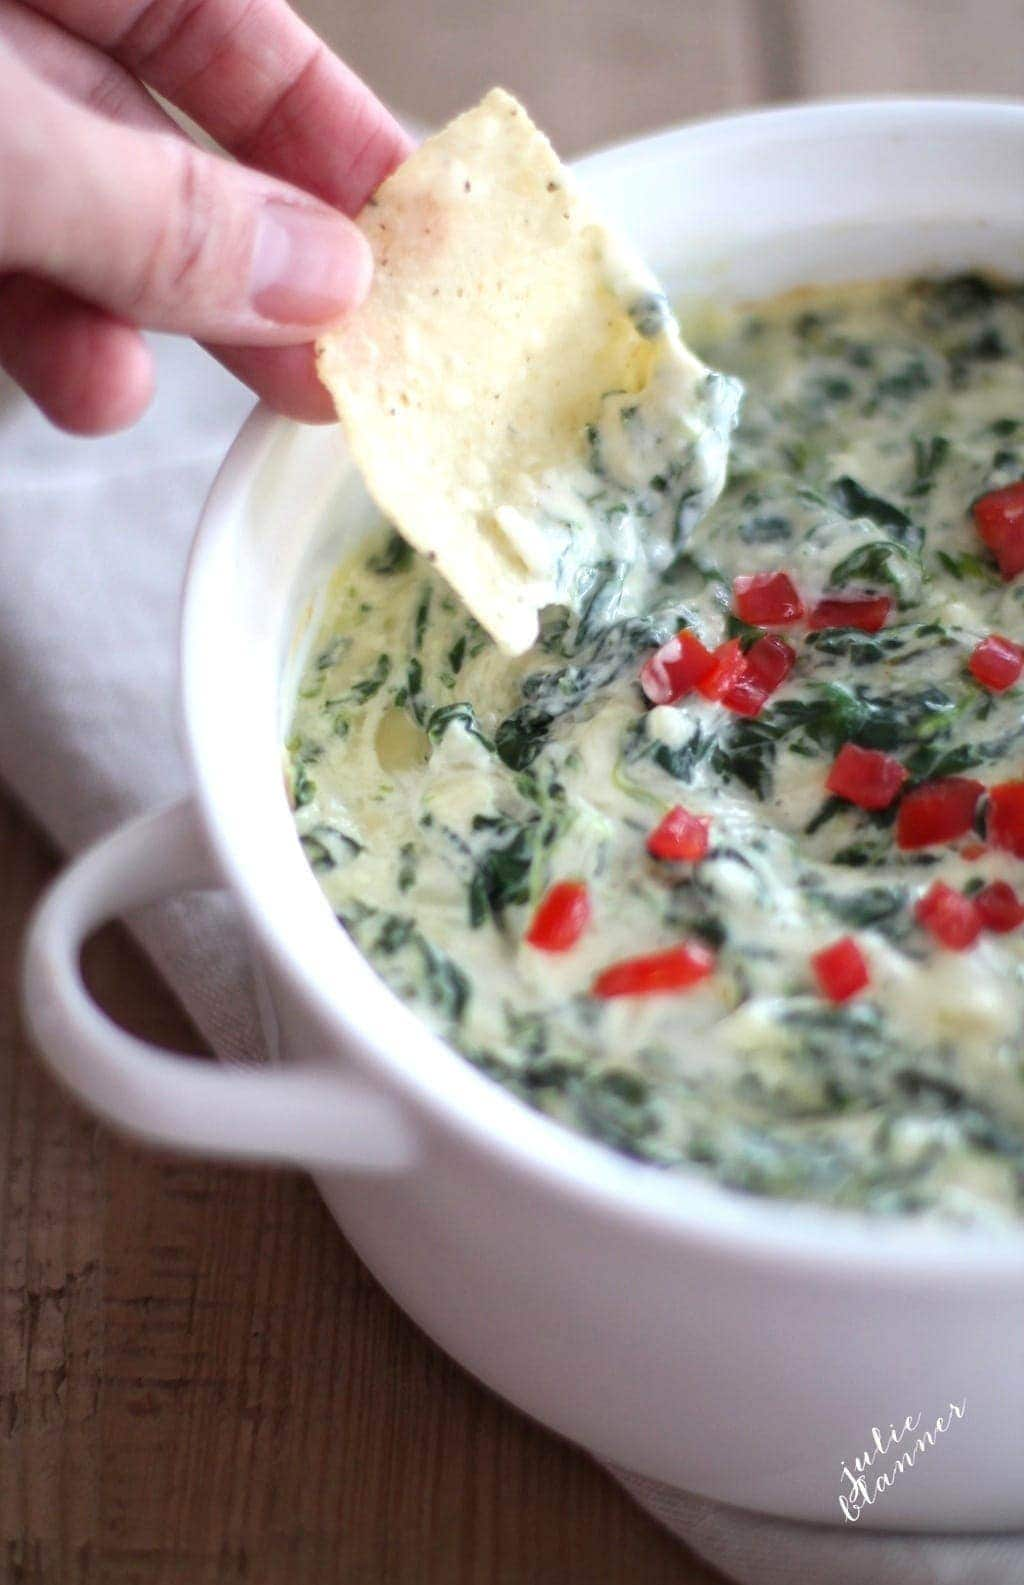 Easy, creamy spinach dip in just 10 minutes! Get the recipe for this fabulous make ahead appetizer. Perfect for holiday entertaining!